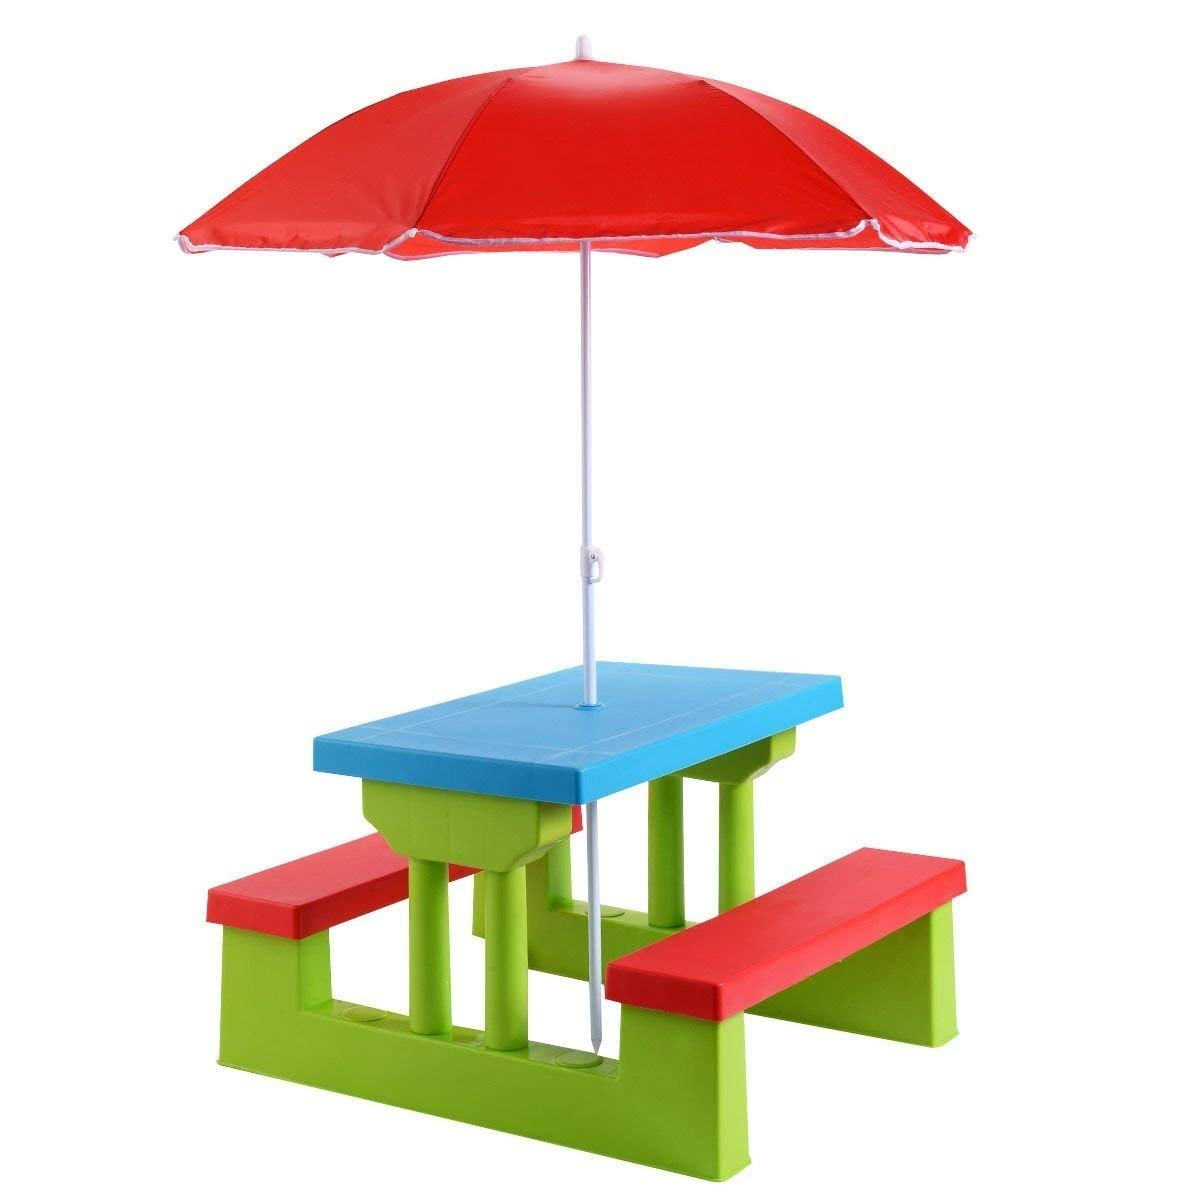 Dayanaprincess Kids Picnic Folding Table and Bench with Umbrella Garden Pool Camping Outdoor Furniture